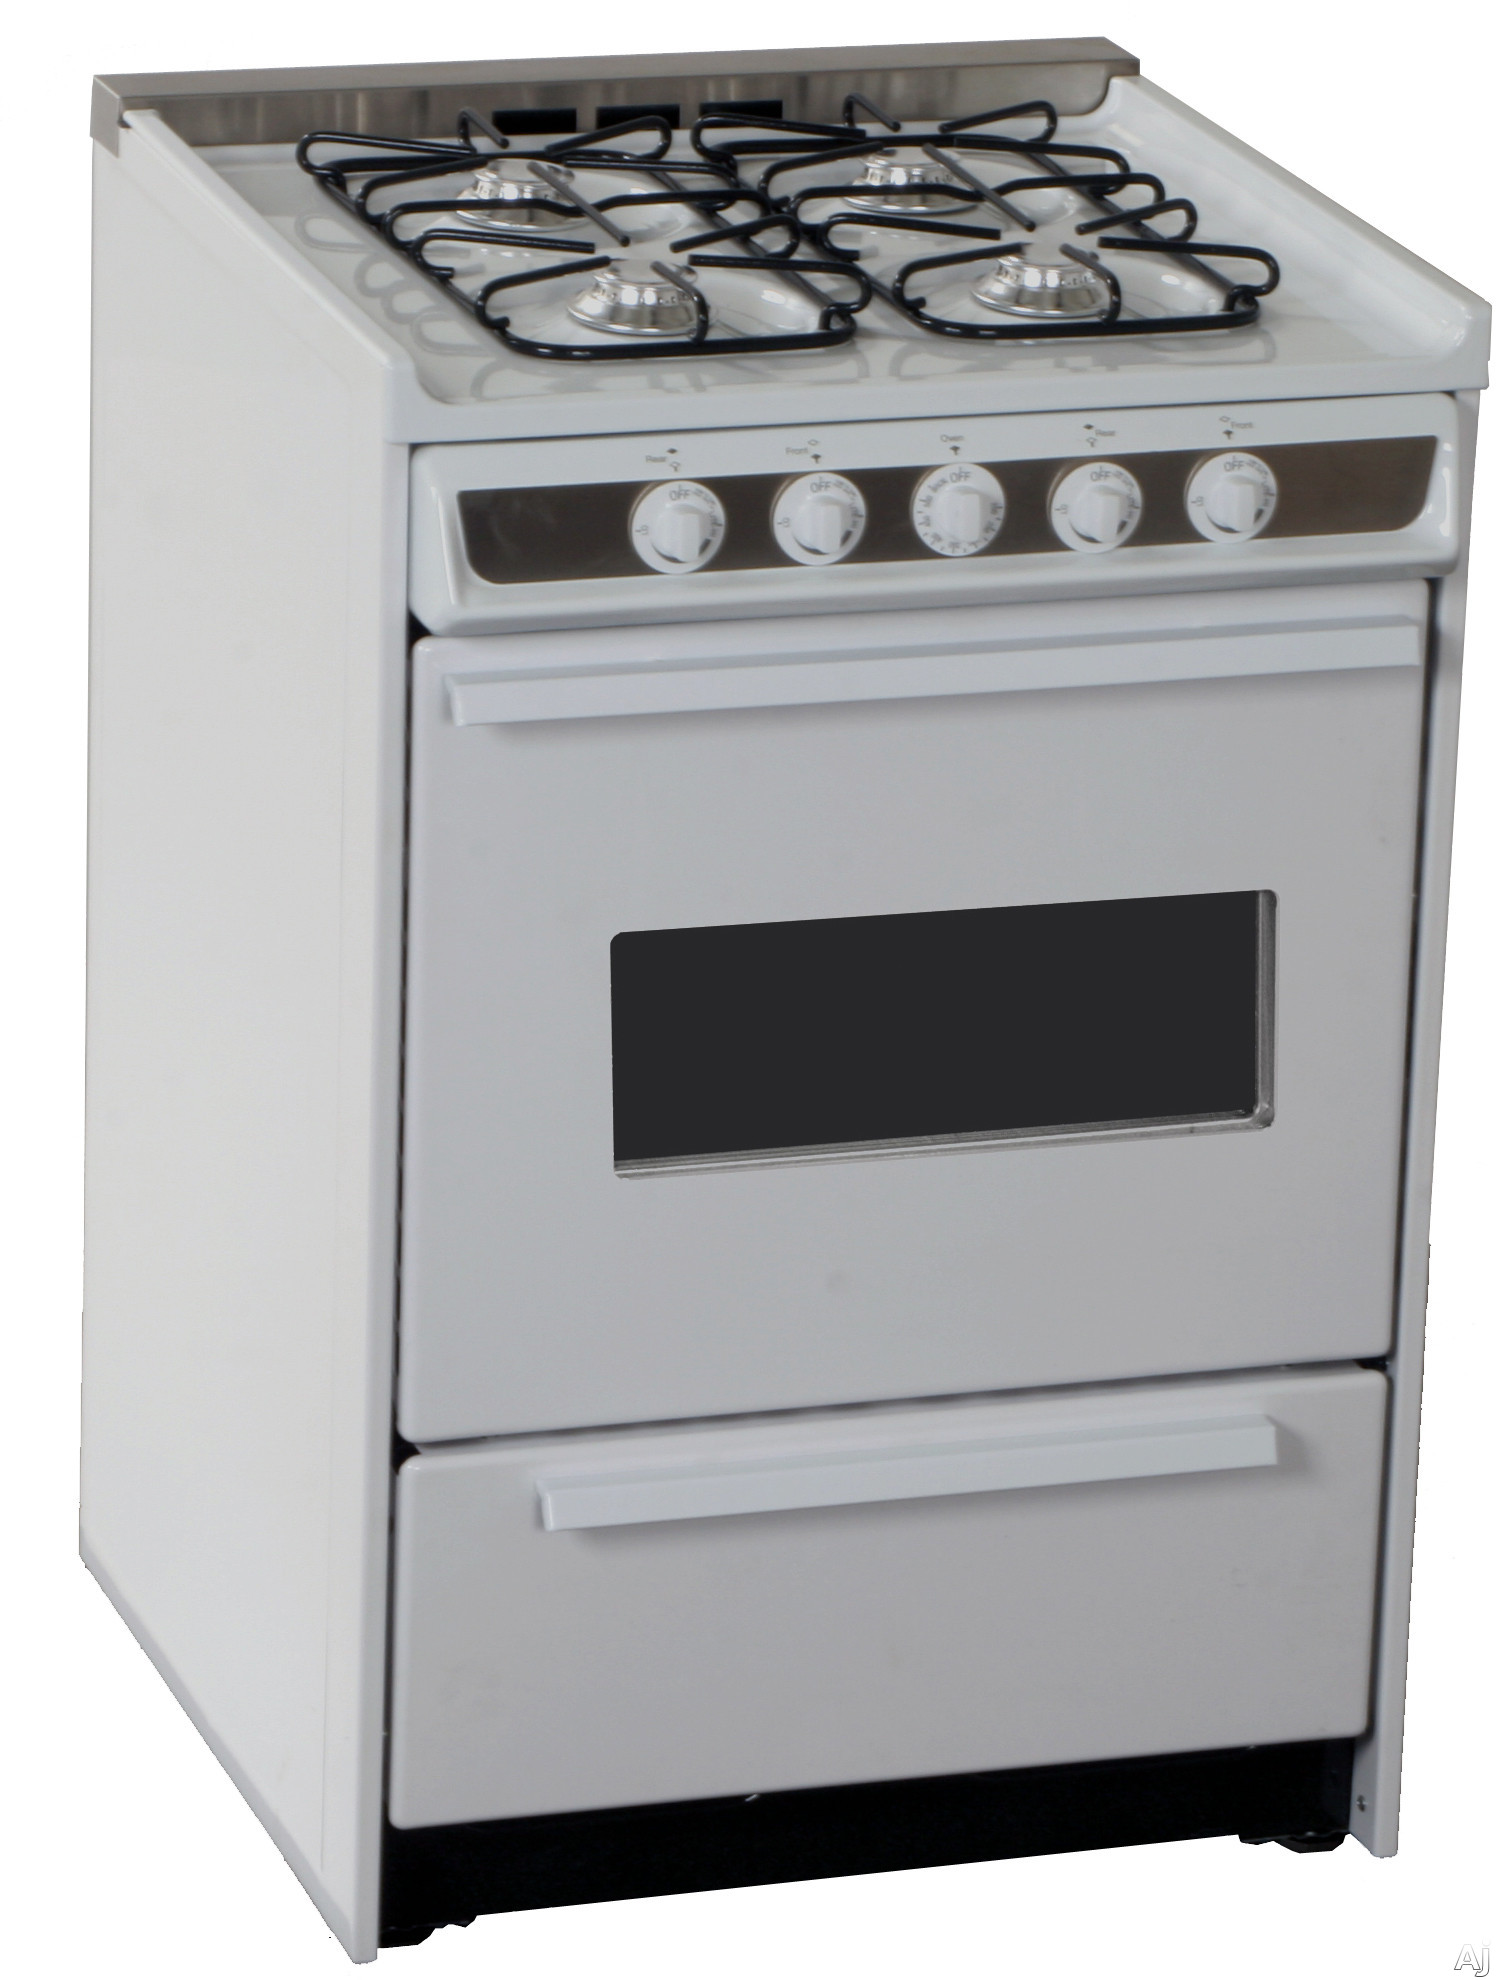 "Summit Professional Series WNM616RW 24"" Slide-In Gas Range with Manual Clean, Electronic Ignition, U.S. & Canada WNM616RW"